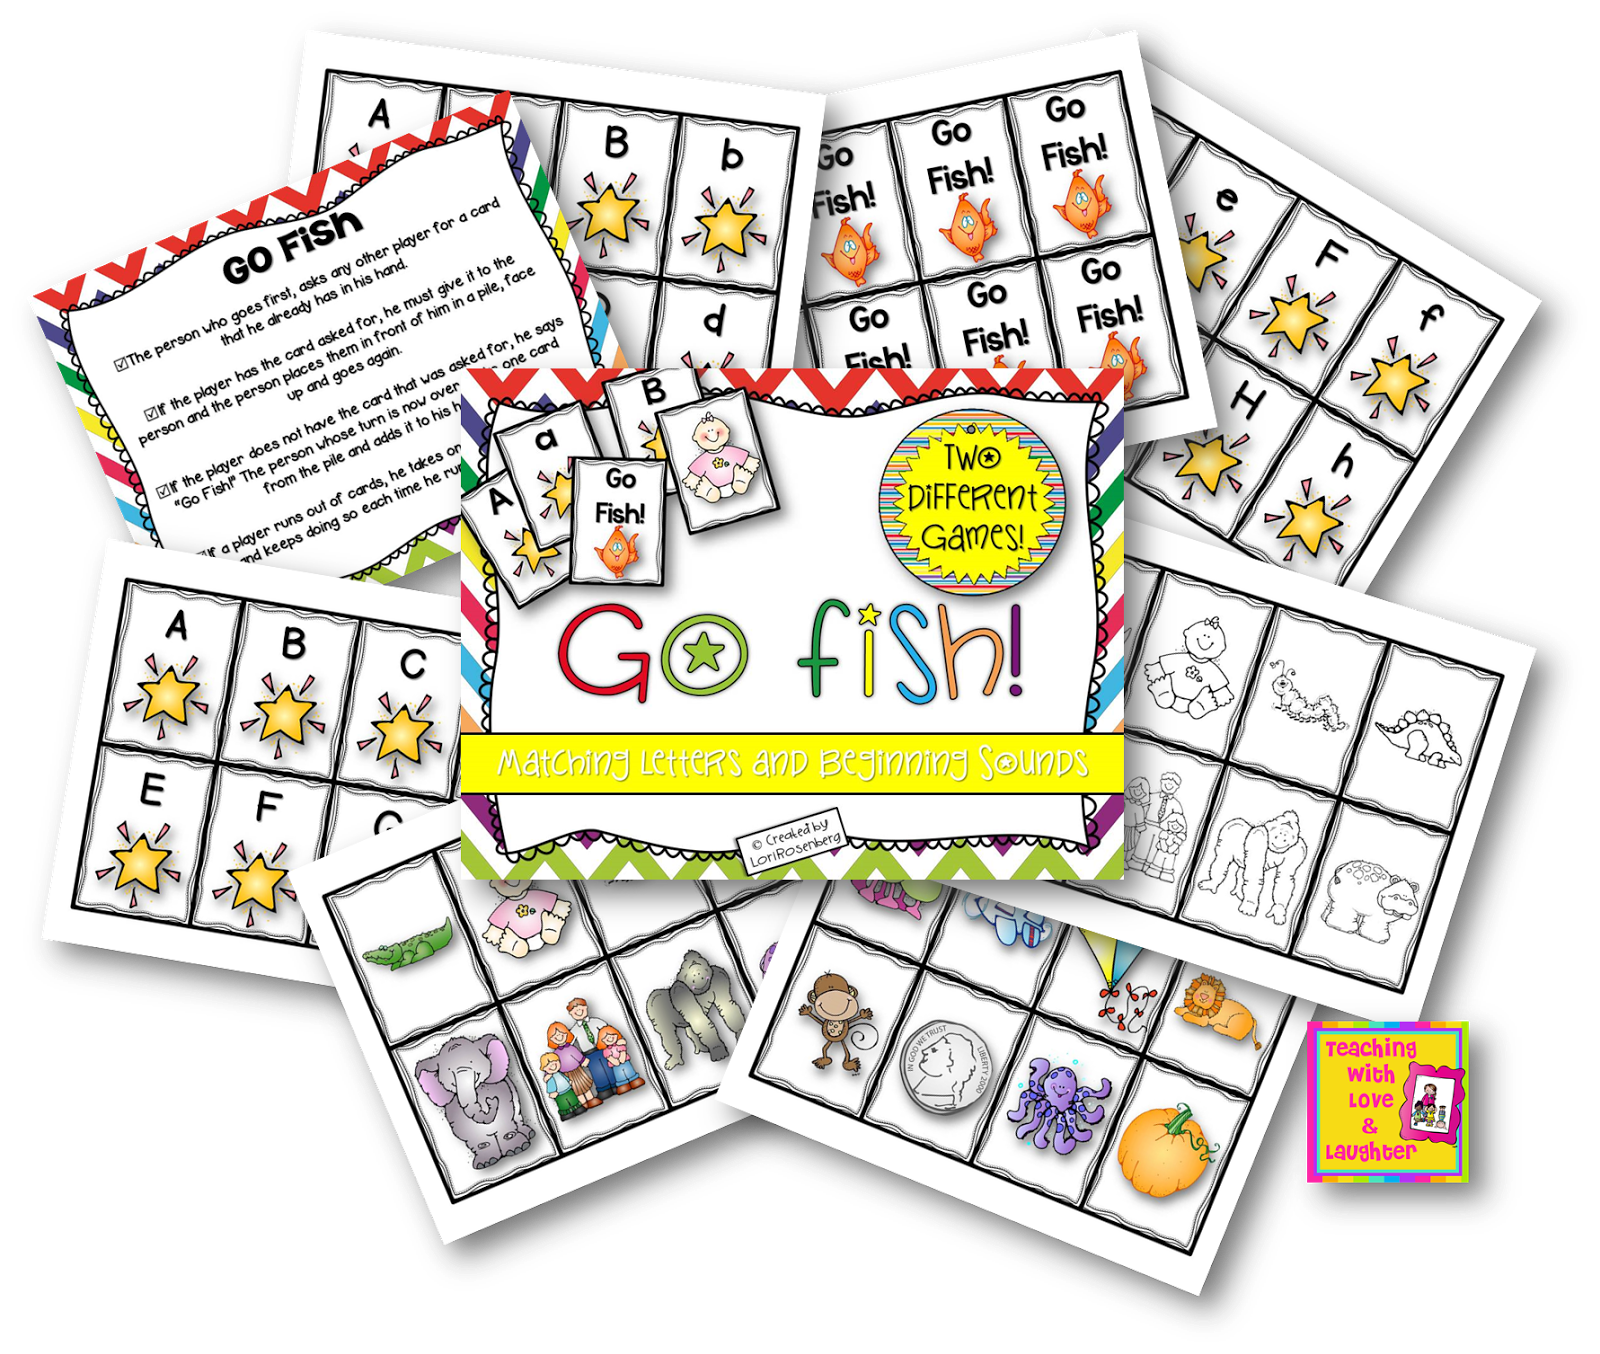 and Teaching go Love Laughter: Sounds With fish Words template Beginning Sight  and word sight